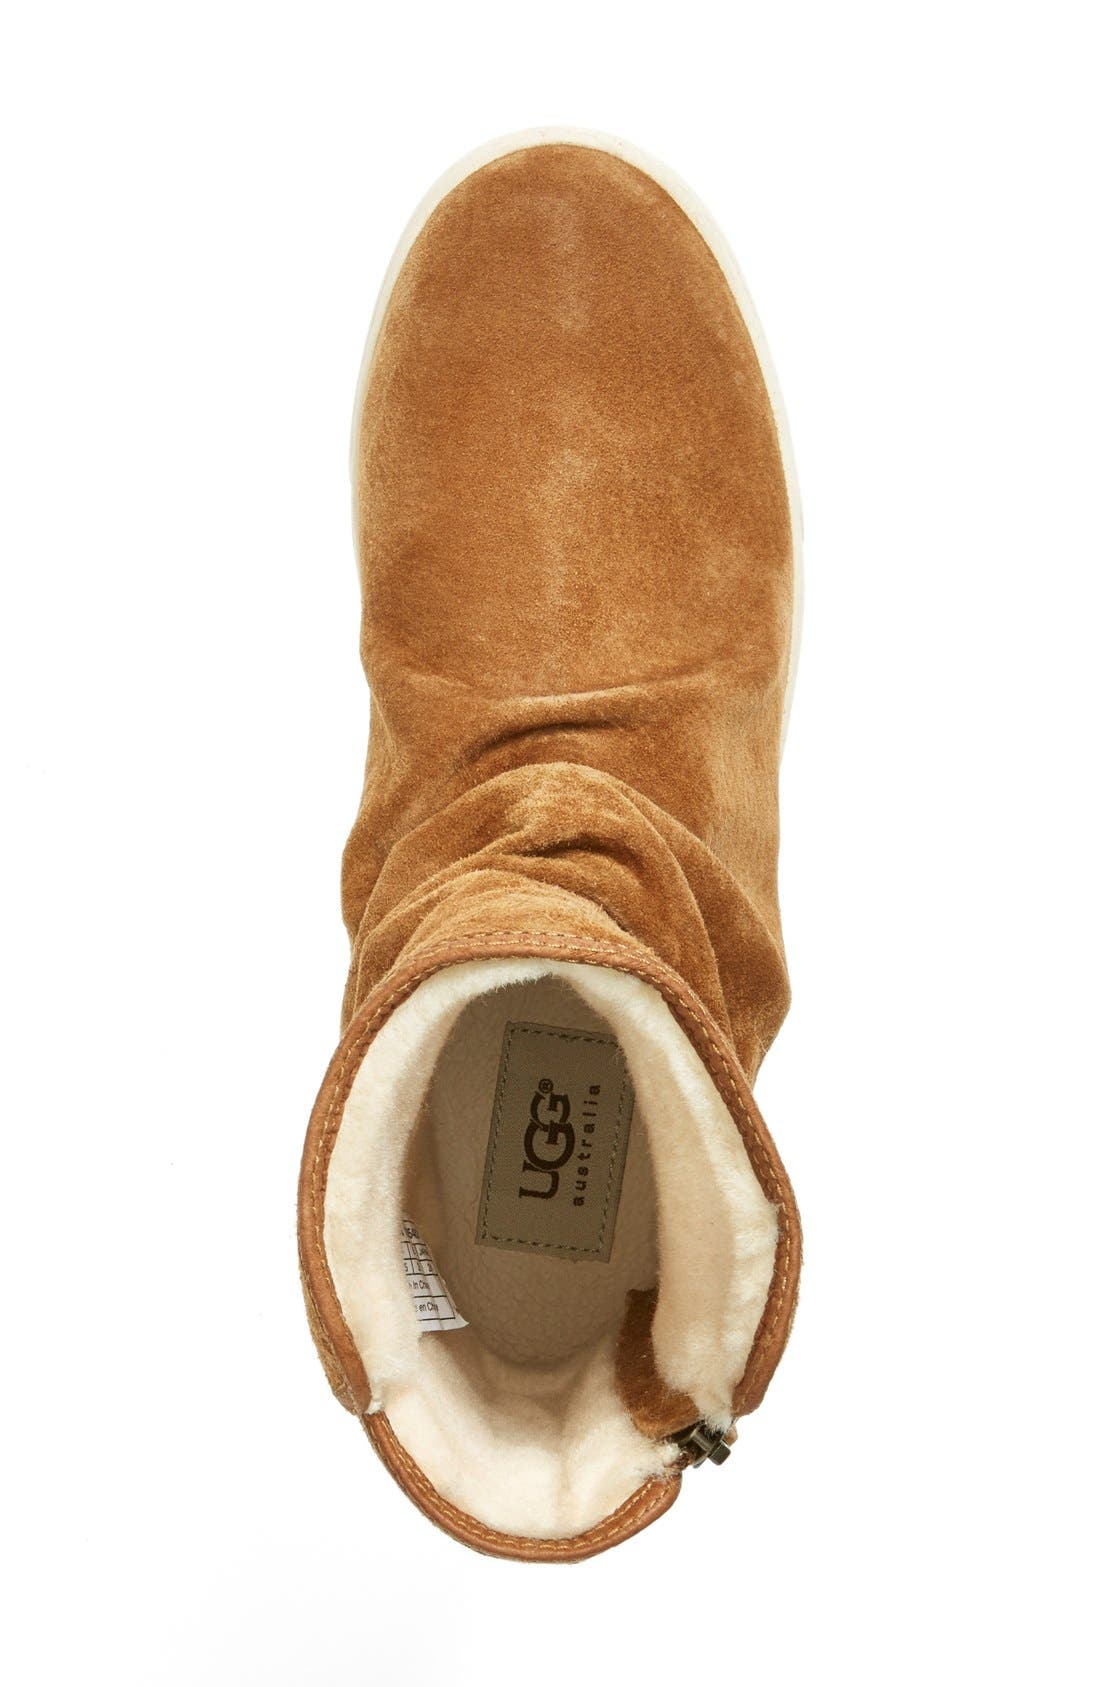 Australia 'Becky' Water Resistant Suede Boot,                             Alternate thumbnail 6, color,